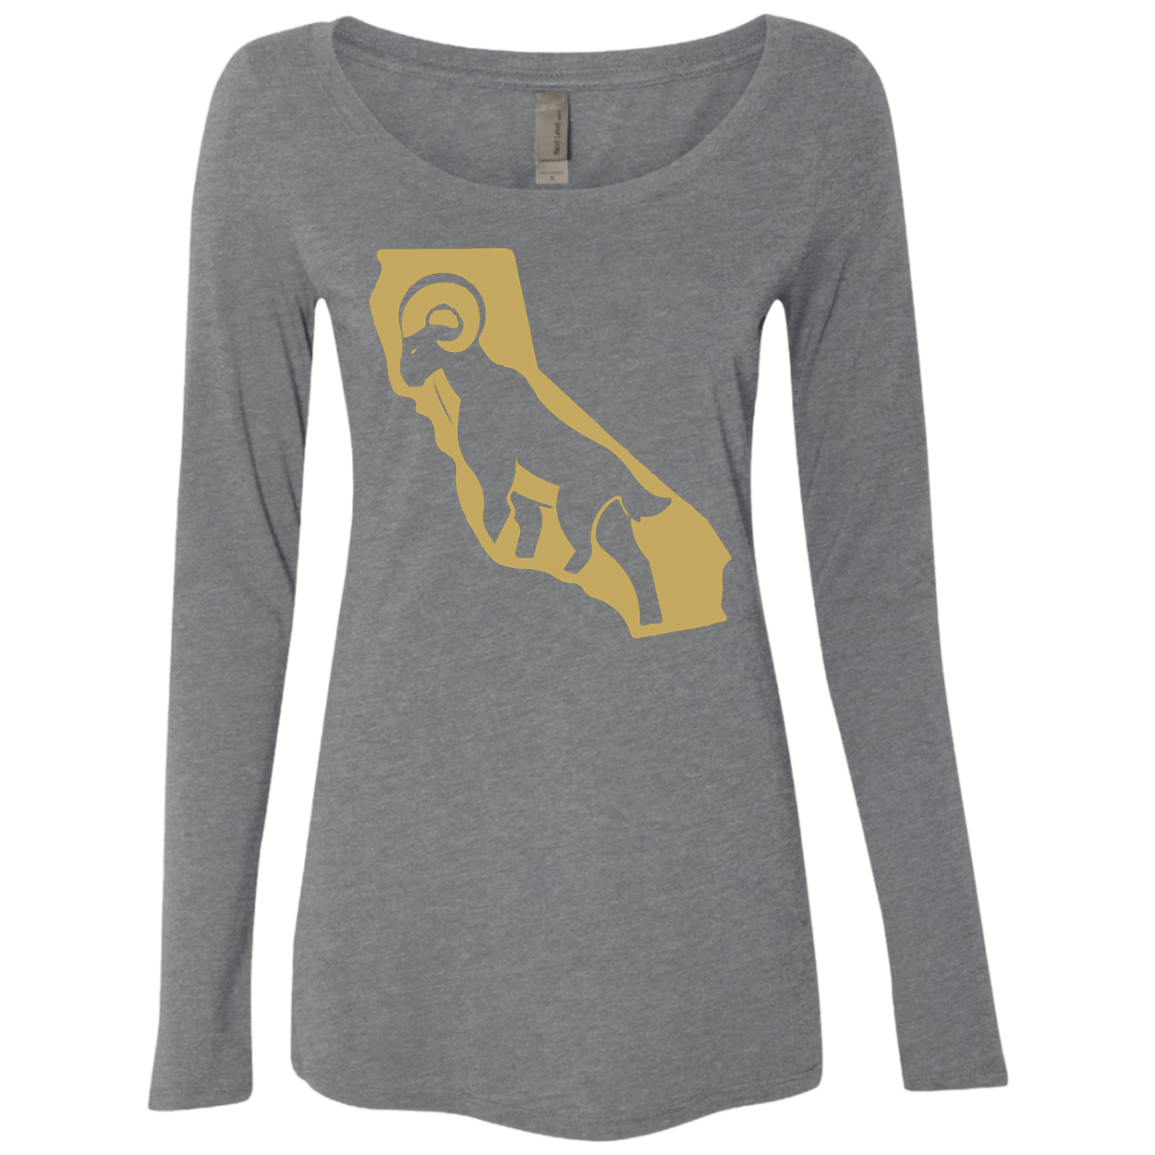 Los Angeles Rams Women's Long Sleeve Tee